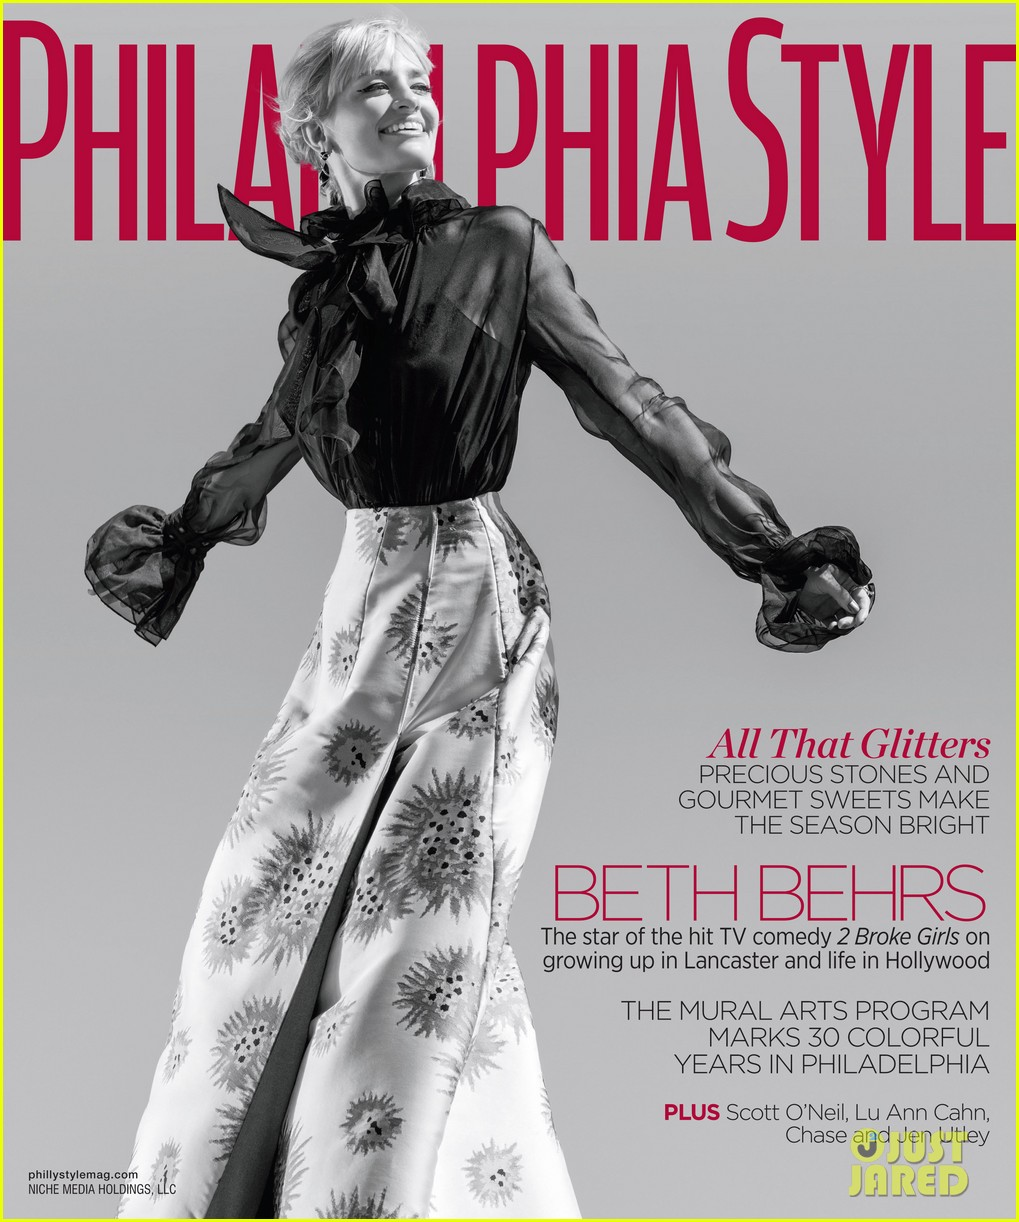 2 broke girls beth behrs covers philadelphia style 01